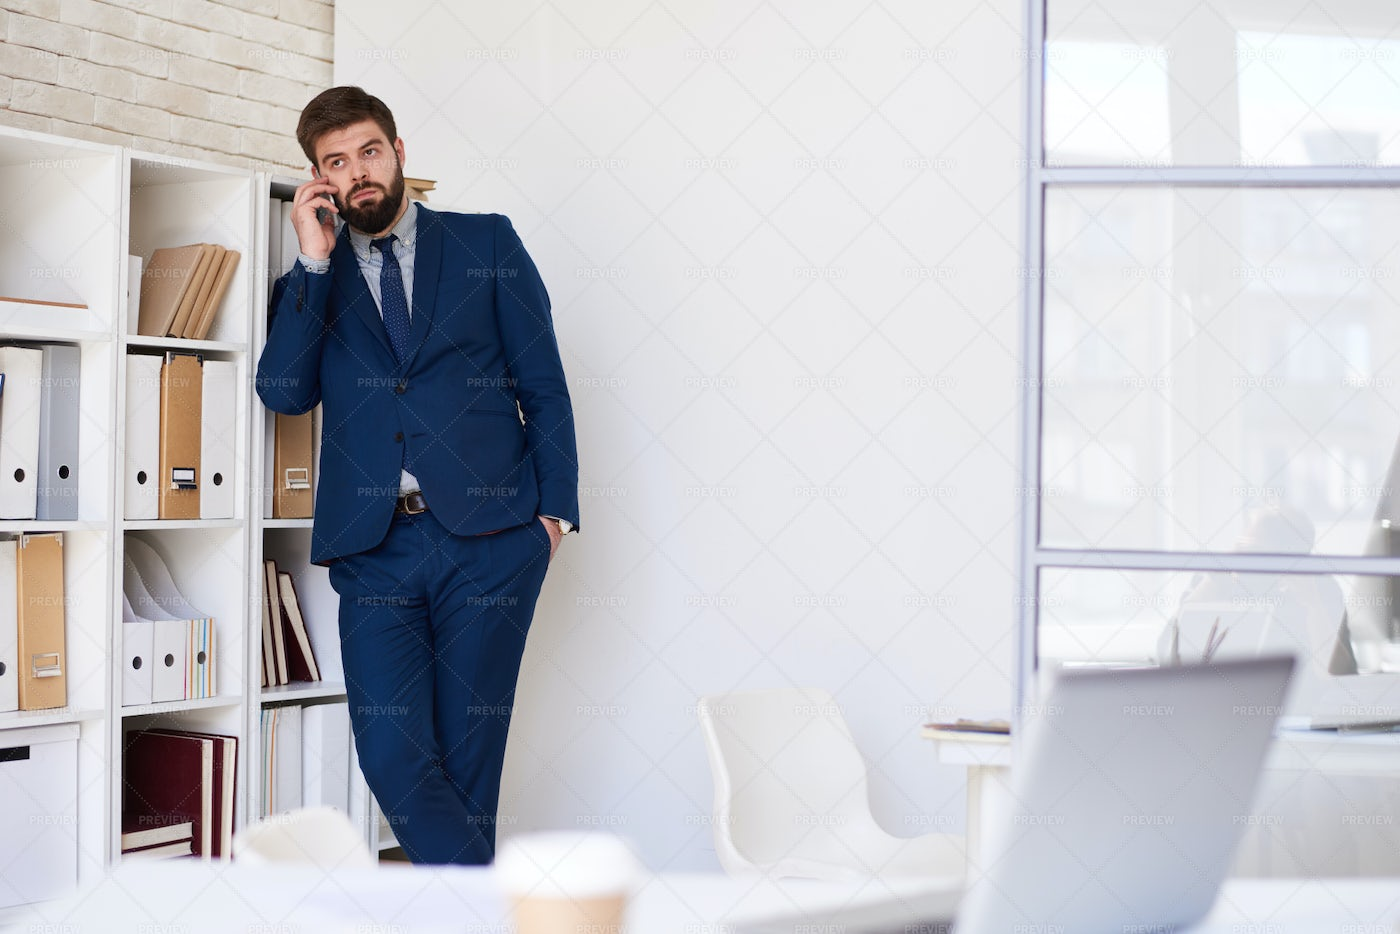 Business Professional Making Phone...: Stock Photos